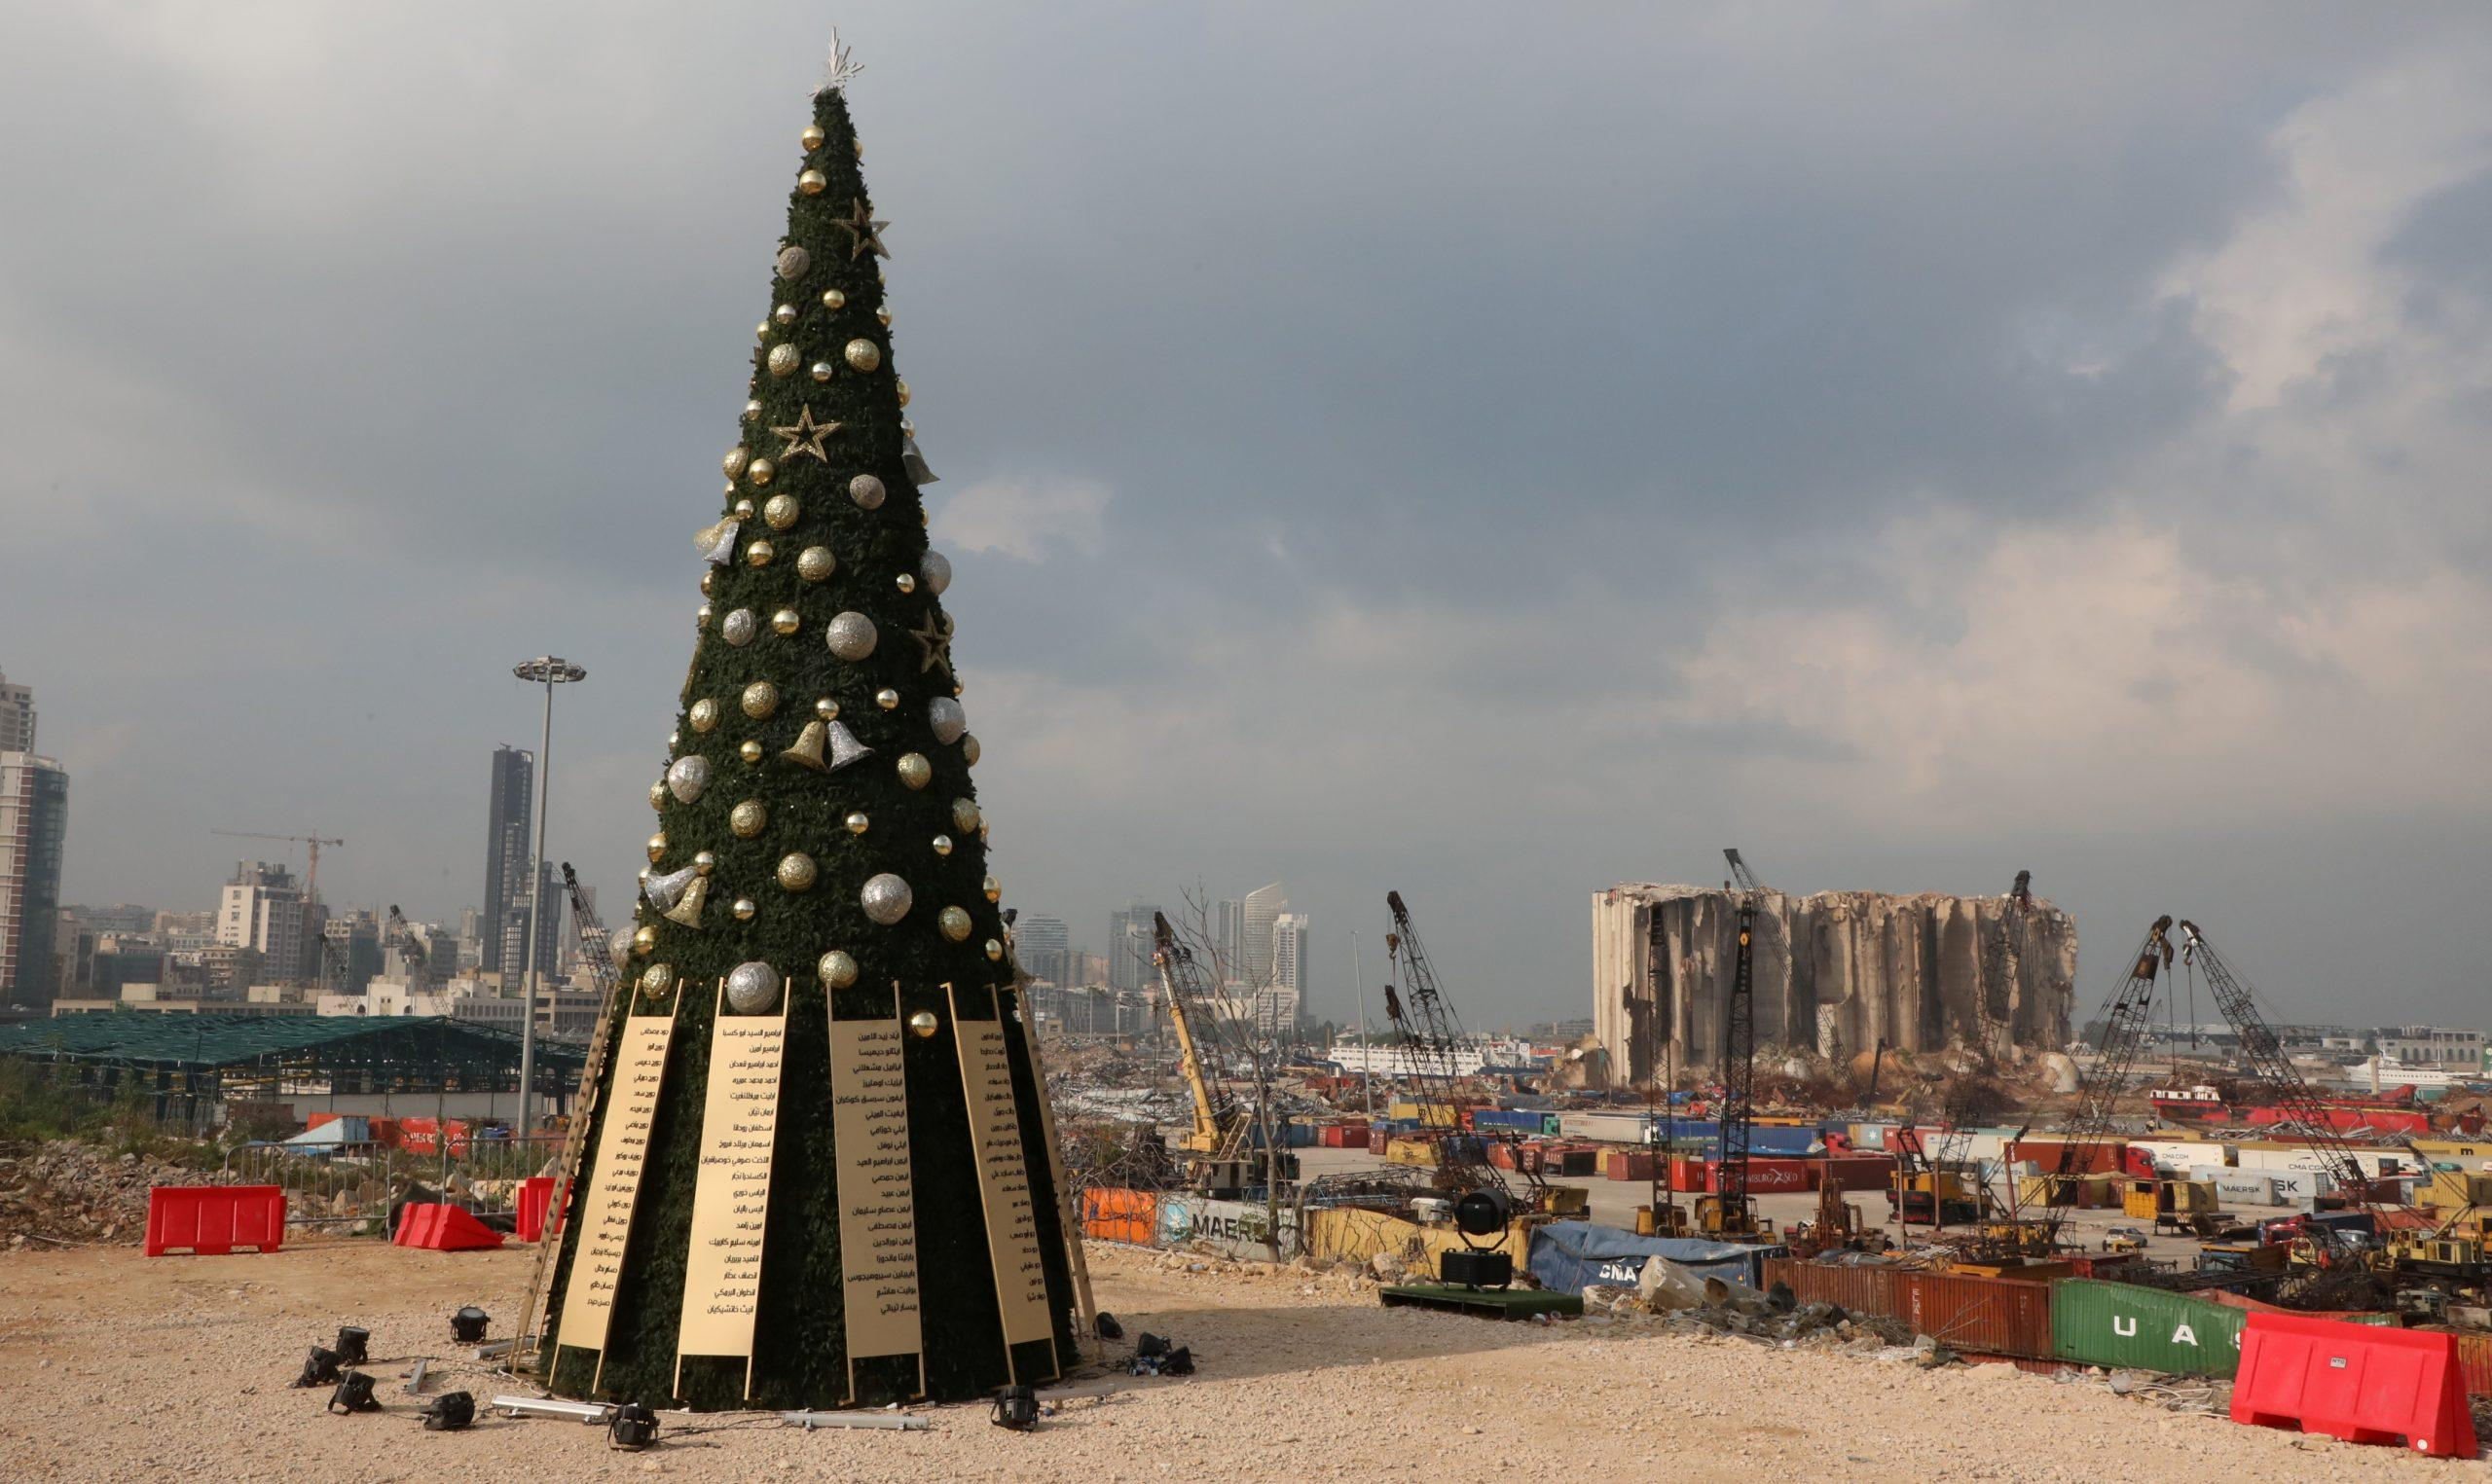 'Glimmer of hope': Beirut seeks Christmas cheer after difficult year